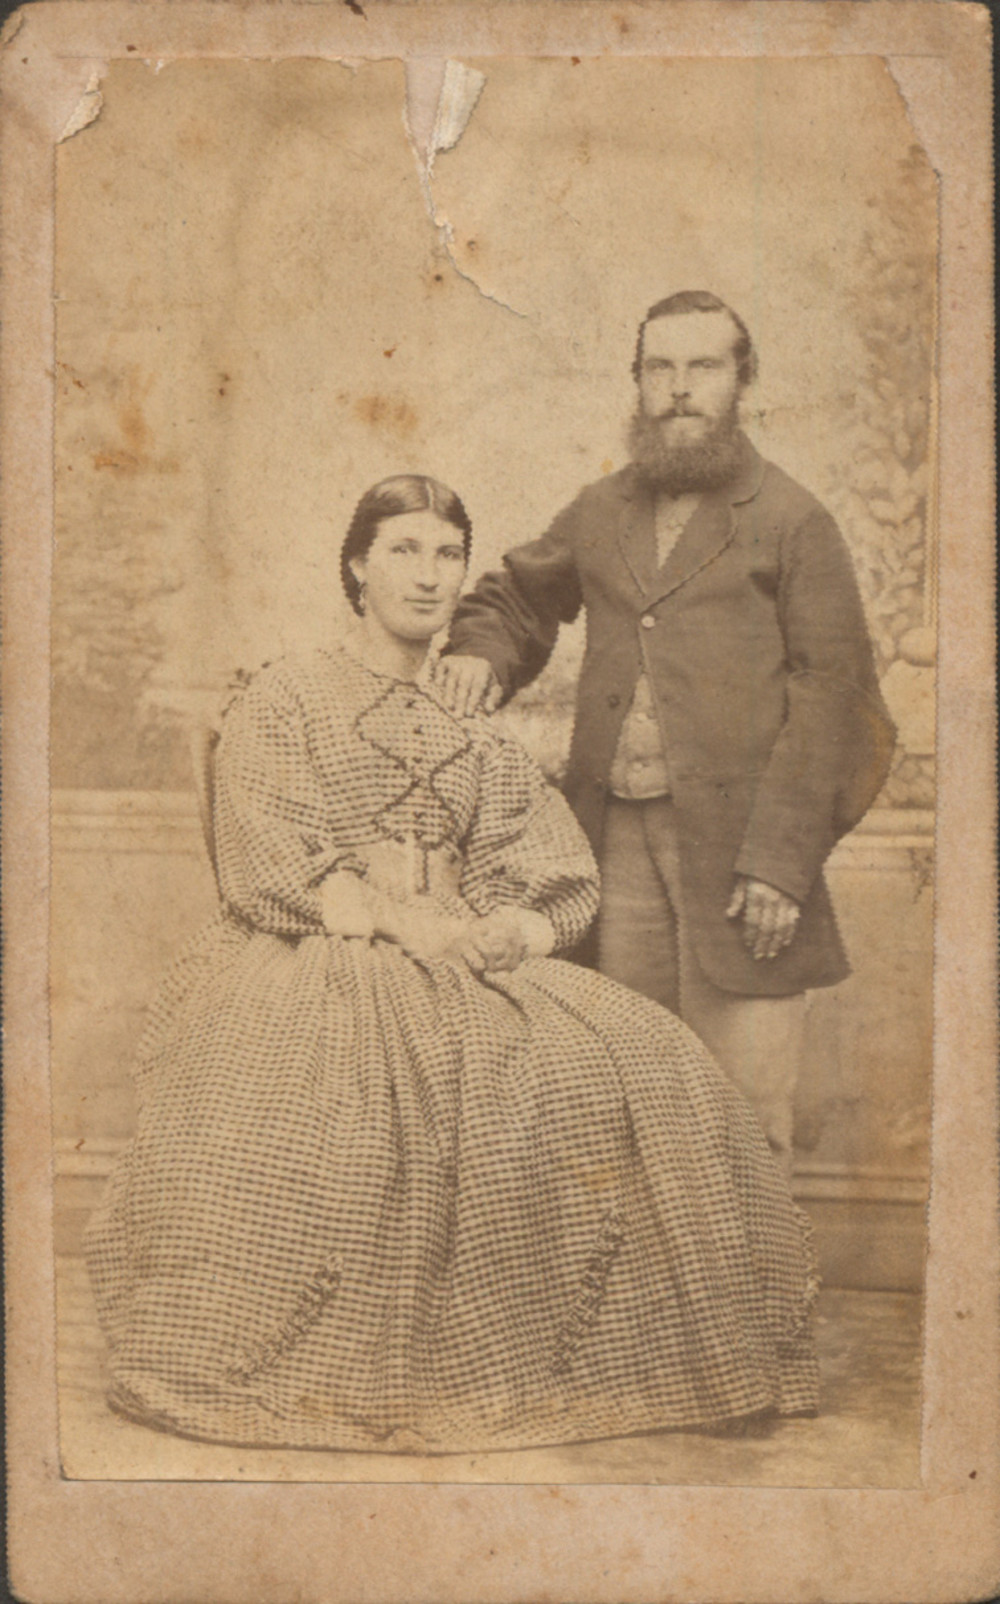 James McLean and Elizabeth Whittaker